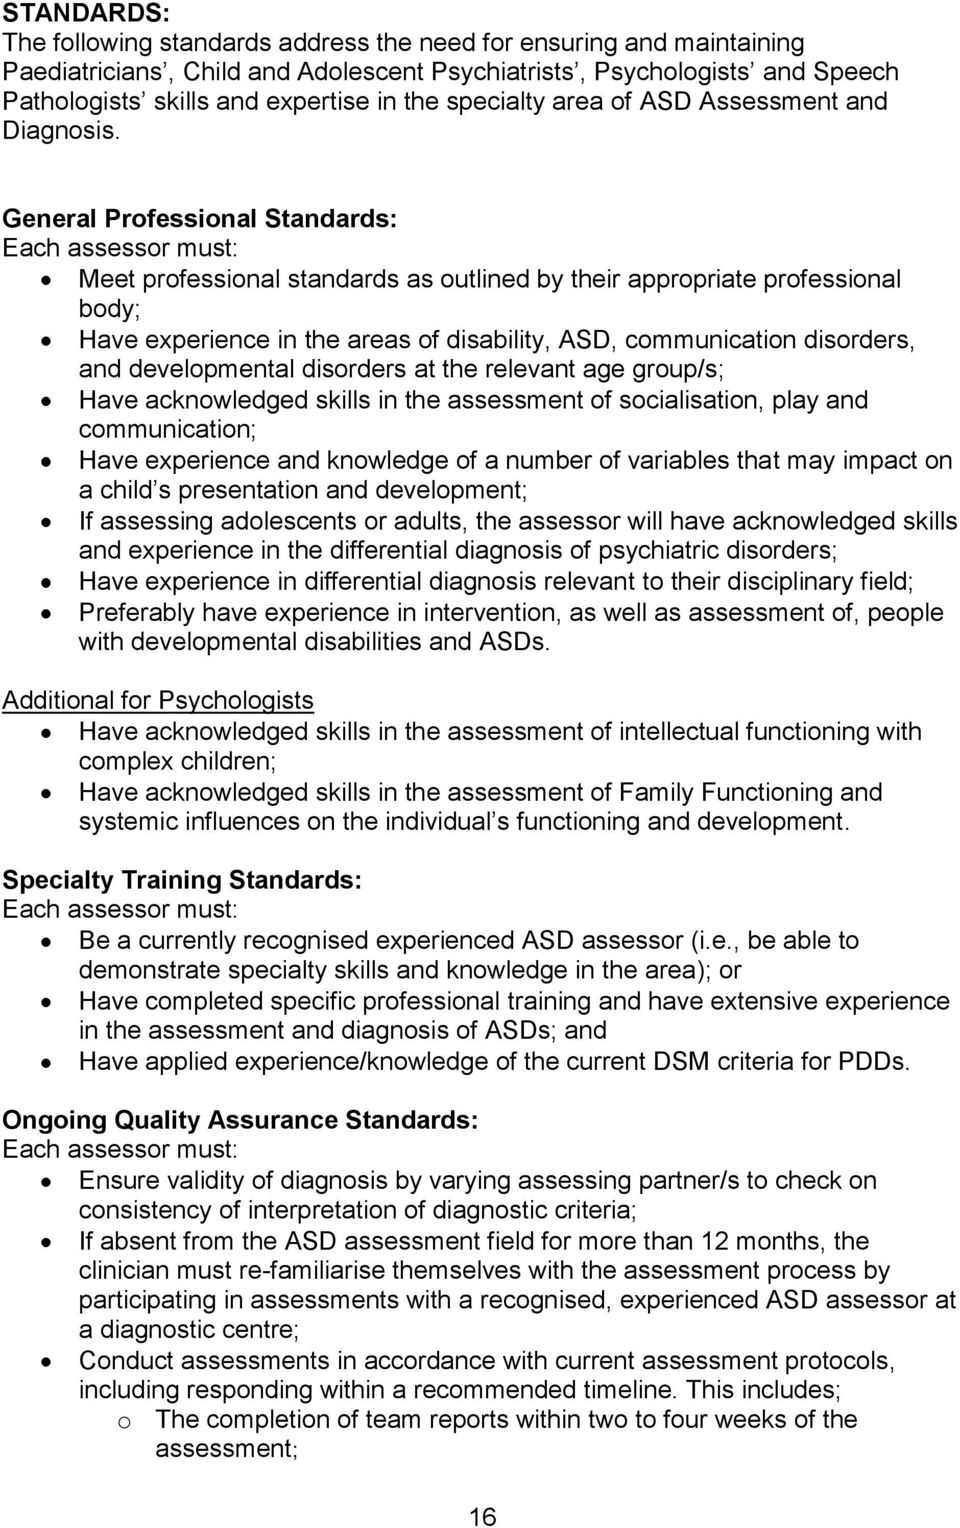 General Professional Standards: Each assessor must: Meet professional standards as outlined by their appropriate professional body; Have experience in the areas of disability, ASD, communication